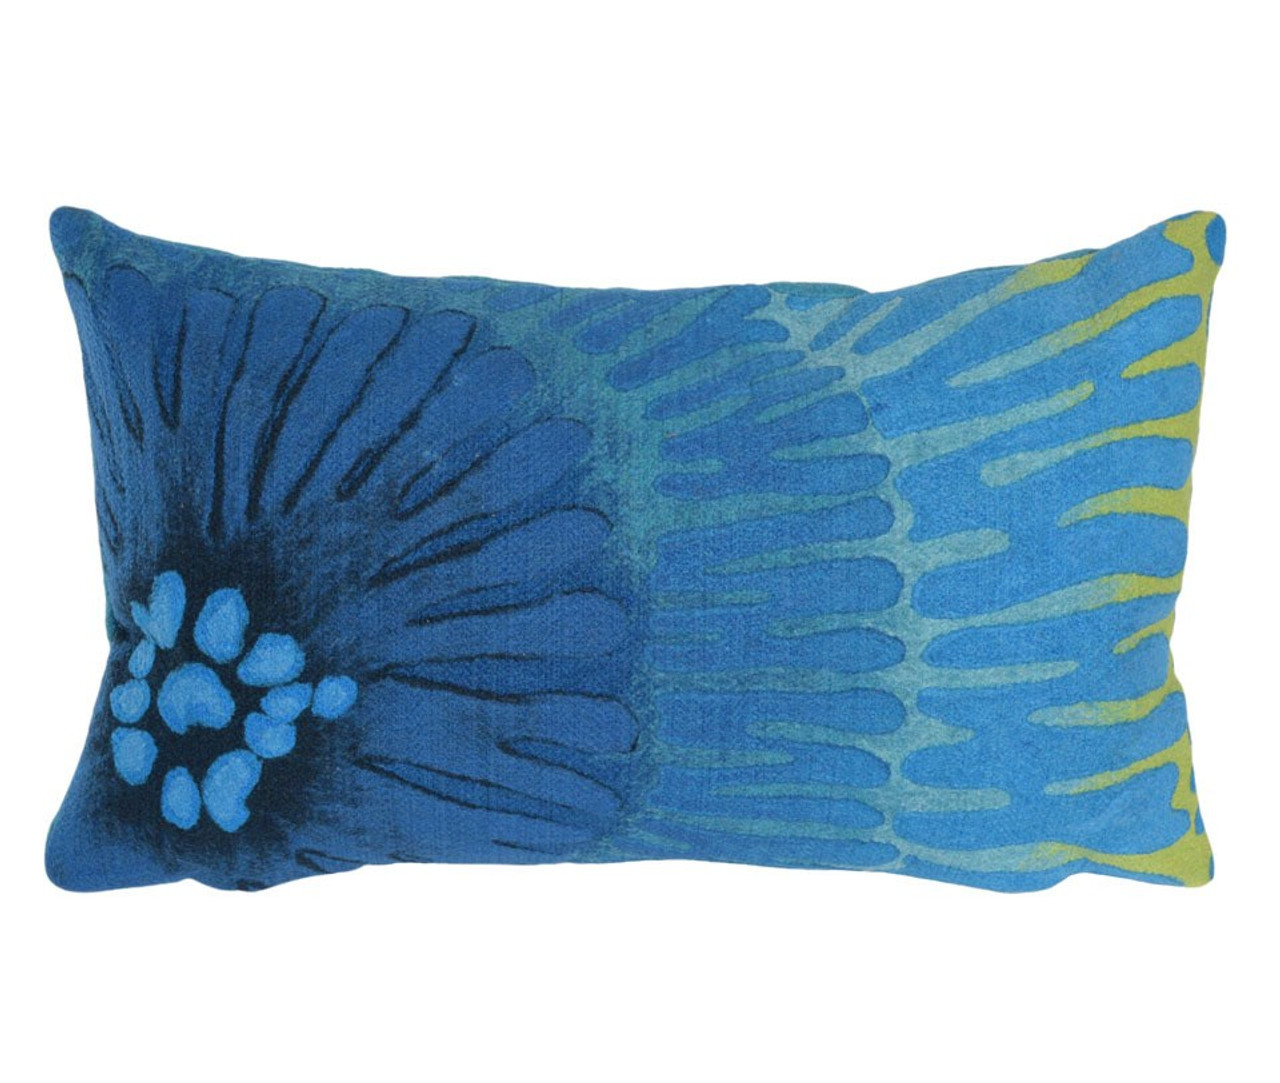 Visions Blue Cirque Caribe Indoor/Outdoor Throw Pillow  - Rectangle